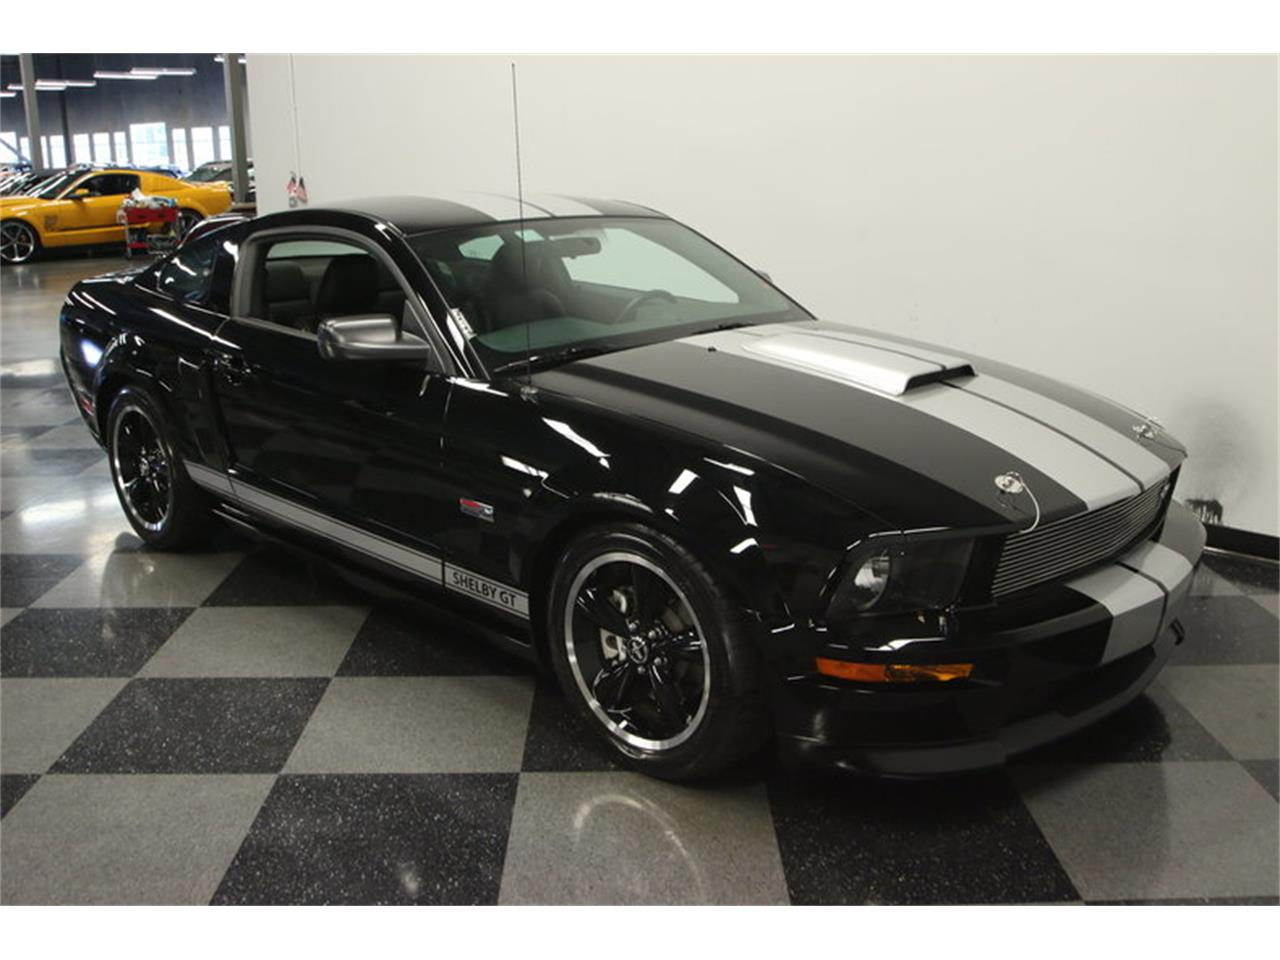 Large Picture of 2007 GT located in Florida - $29,995.00 - MO4G